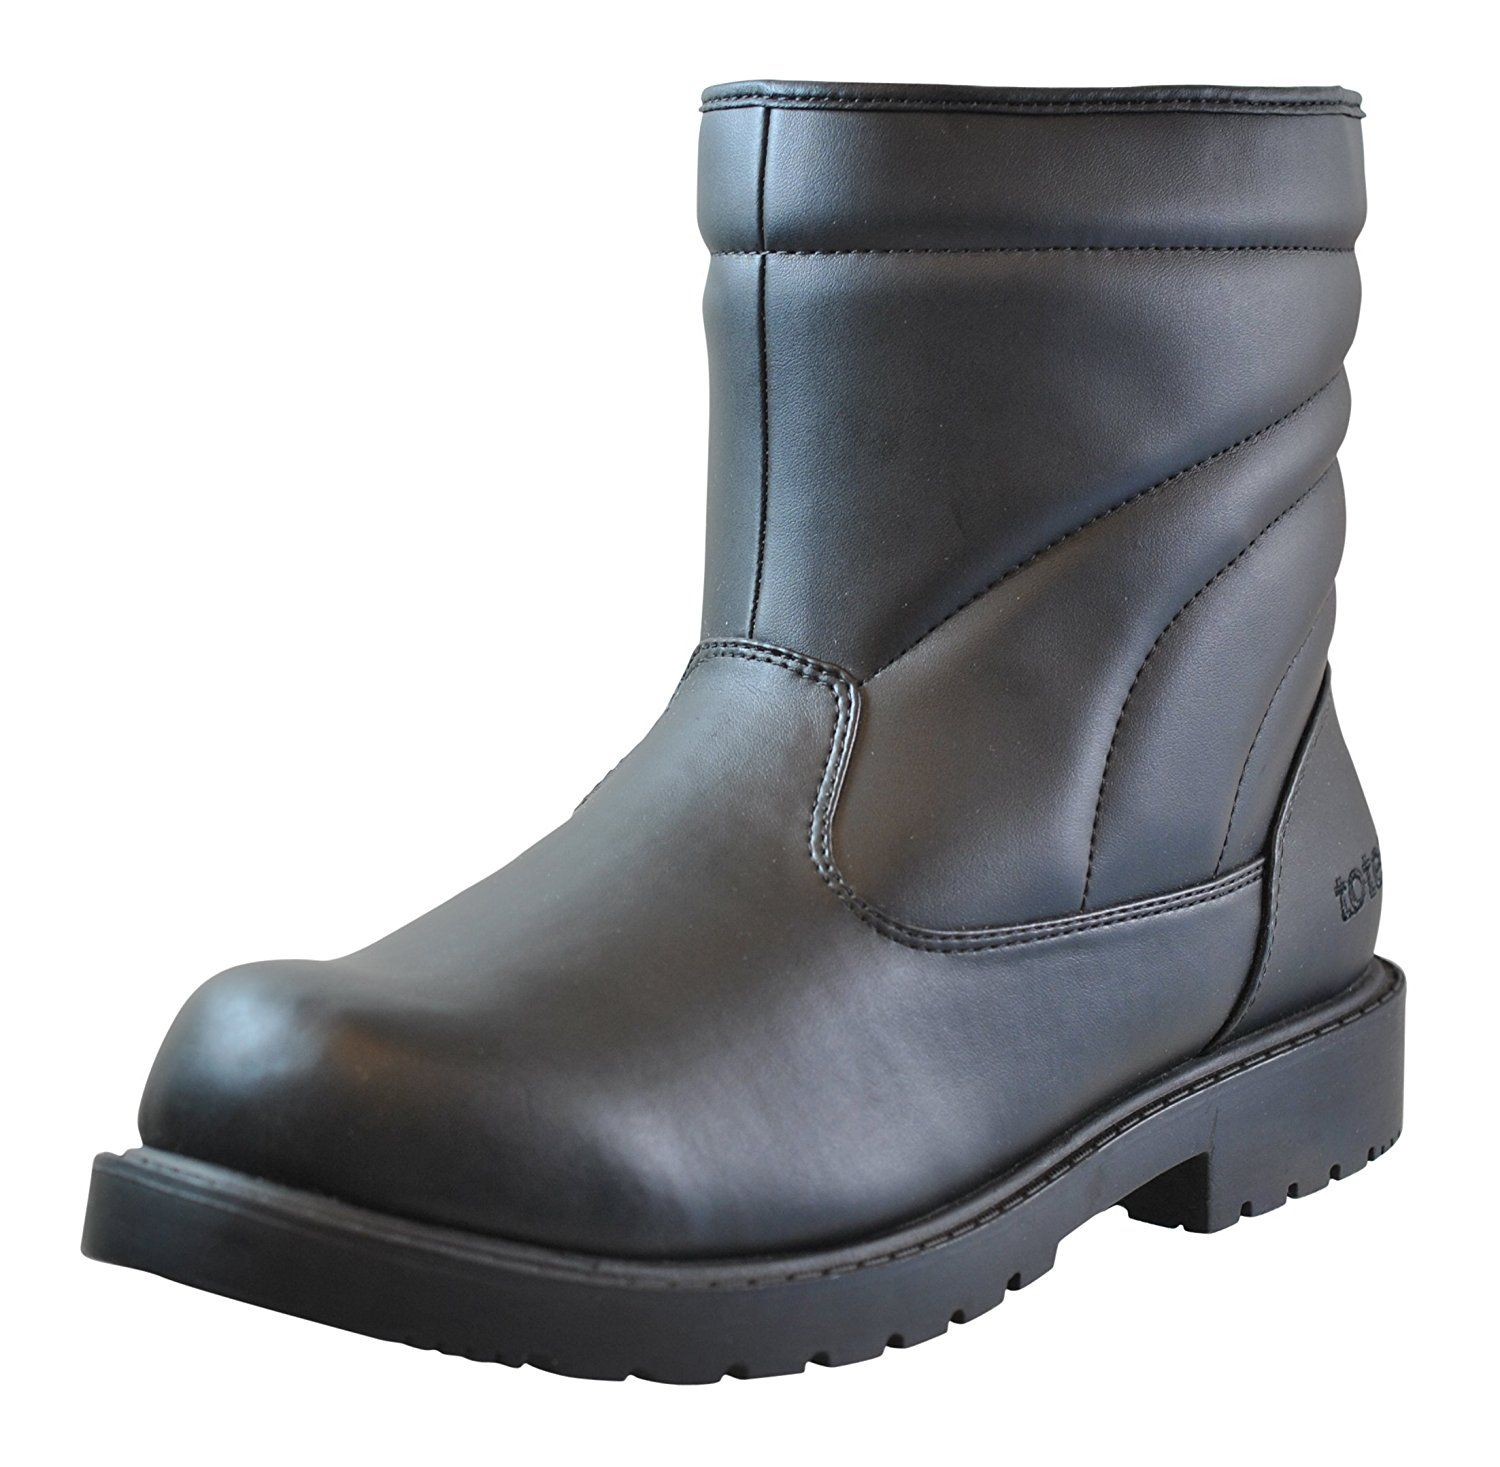 cff200c73eae Totes Mens Waterproof Snow Boot